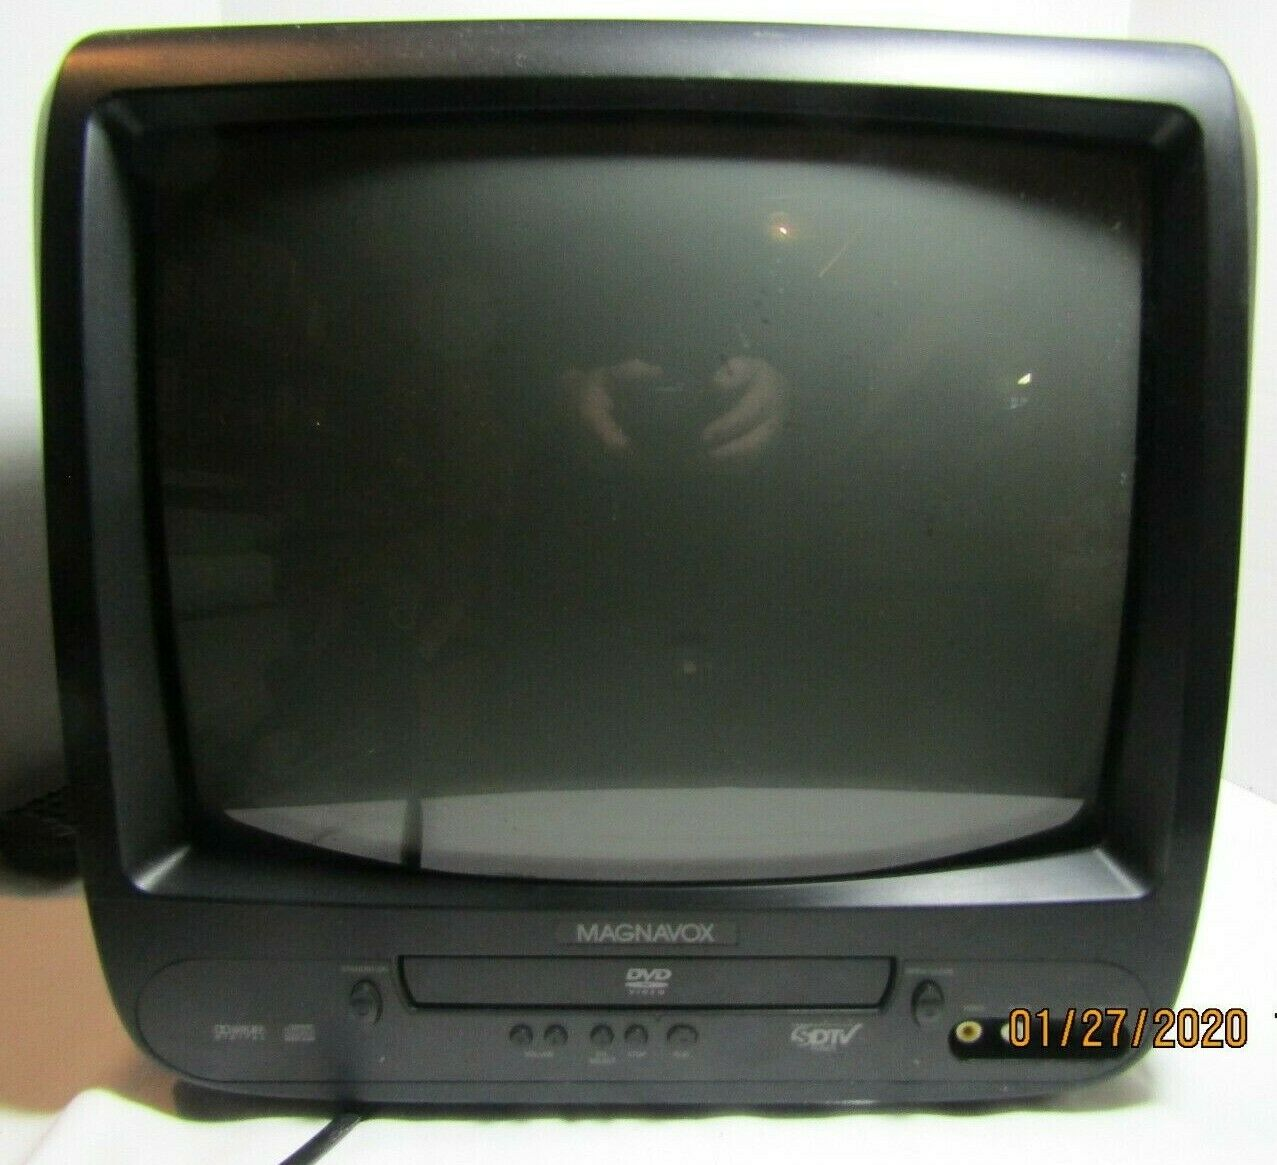 magnavox tv-dvd combo- cd130mw9 with remote/ great for retro gaming